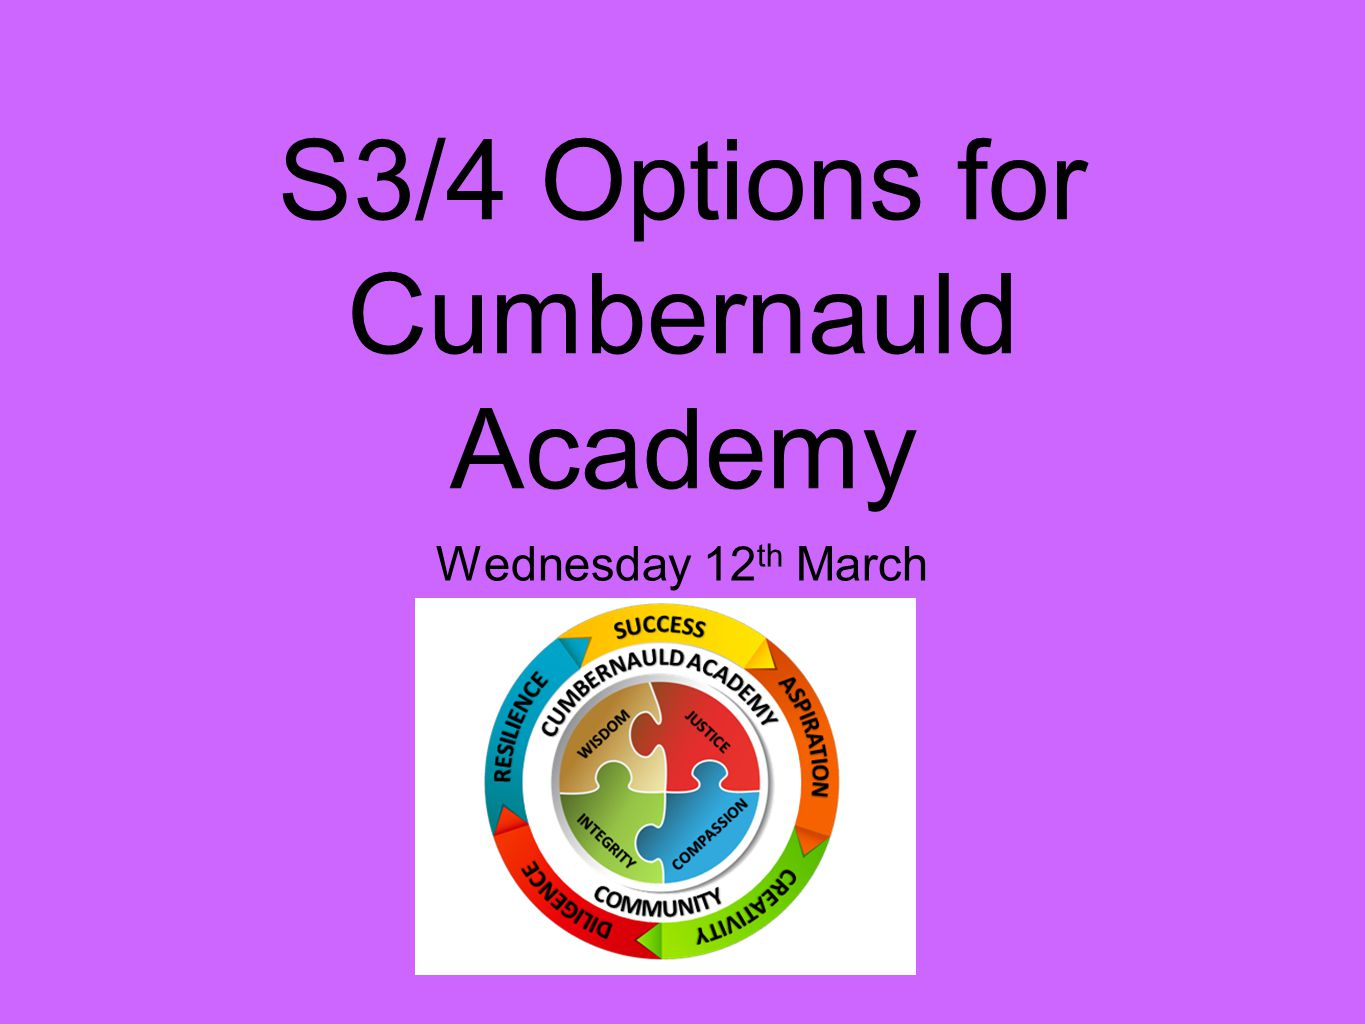 S3/4 Options for Cumbernauld Academy Wednesday 12 th March